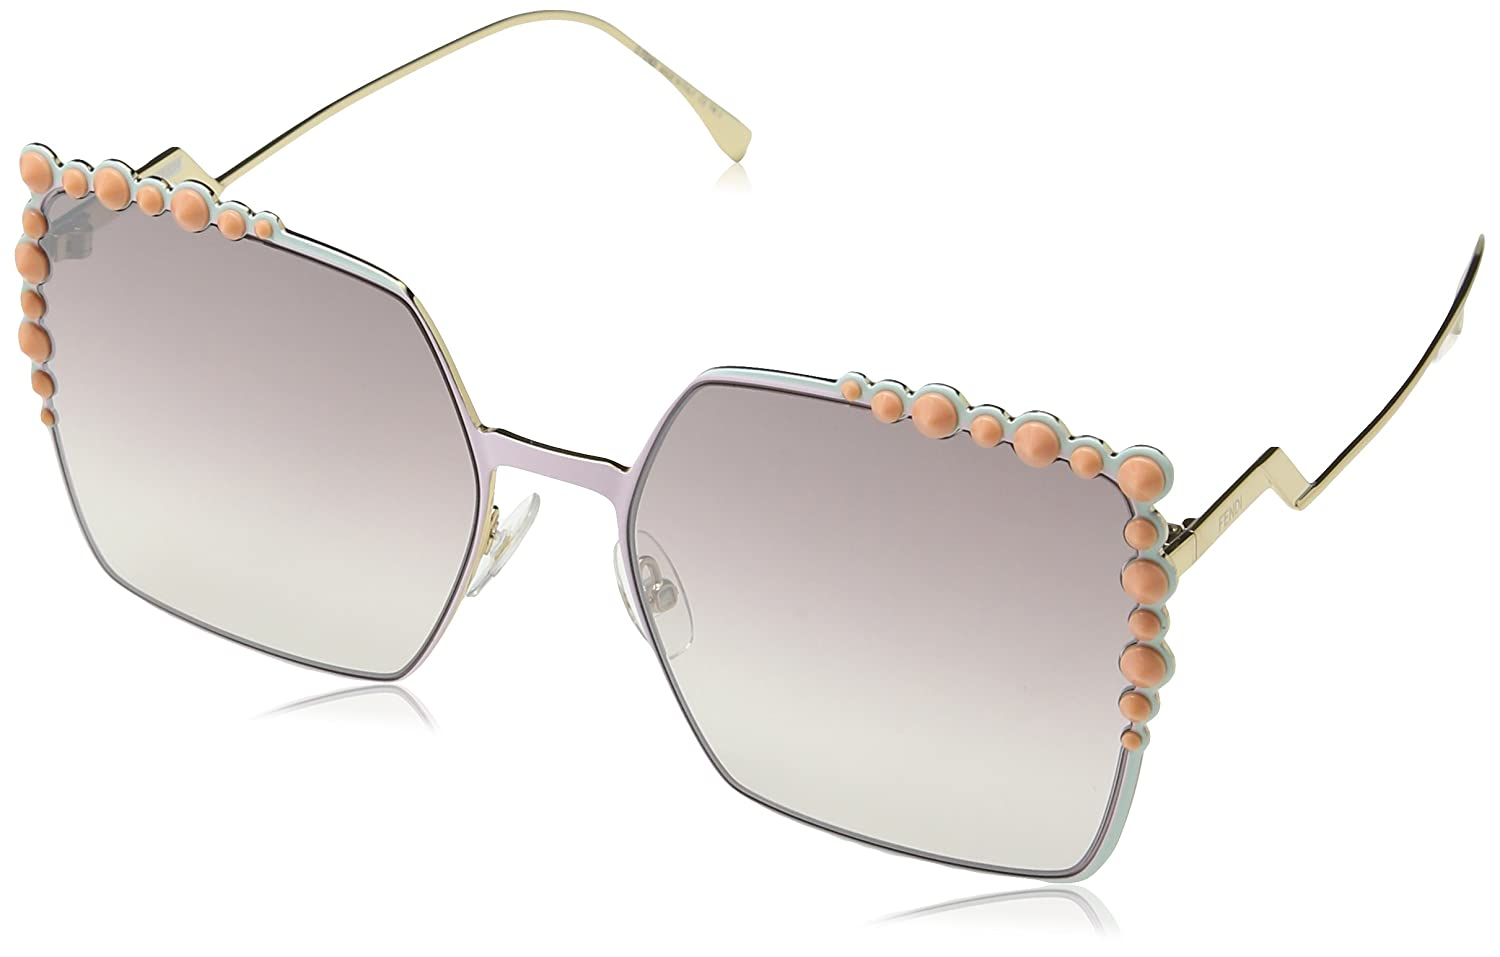 6a941c3cba4 Top3  Fendi Sunglasses 0259 s 035J Pink With brown mirror gradient lens.  Wholesale Price 203.50. Composite frame